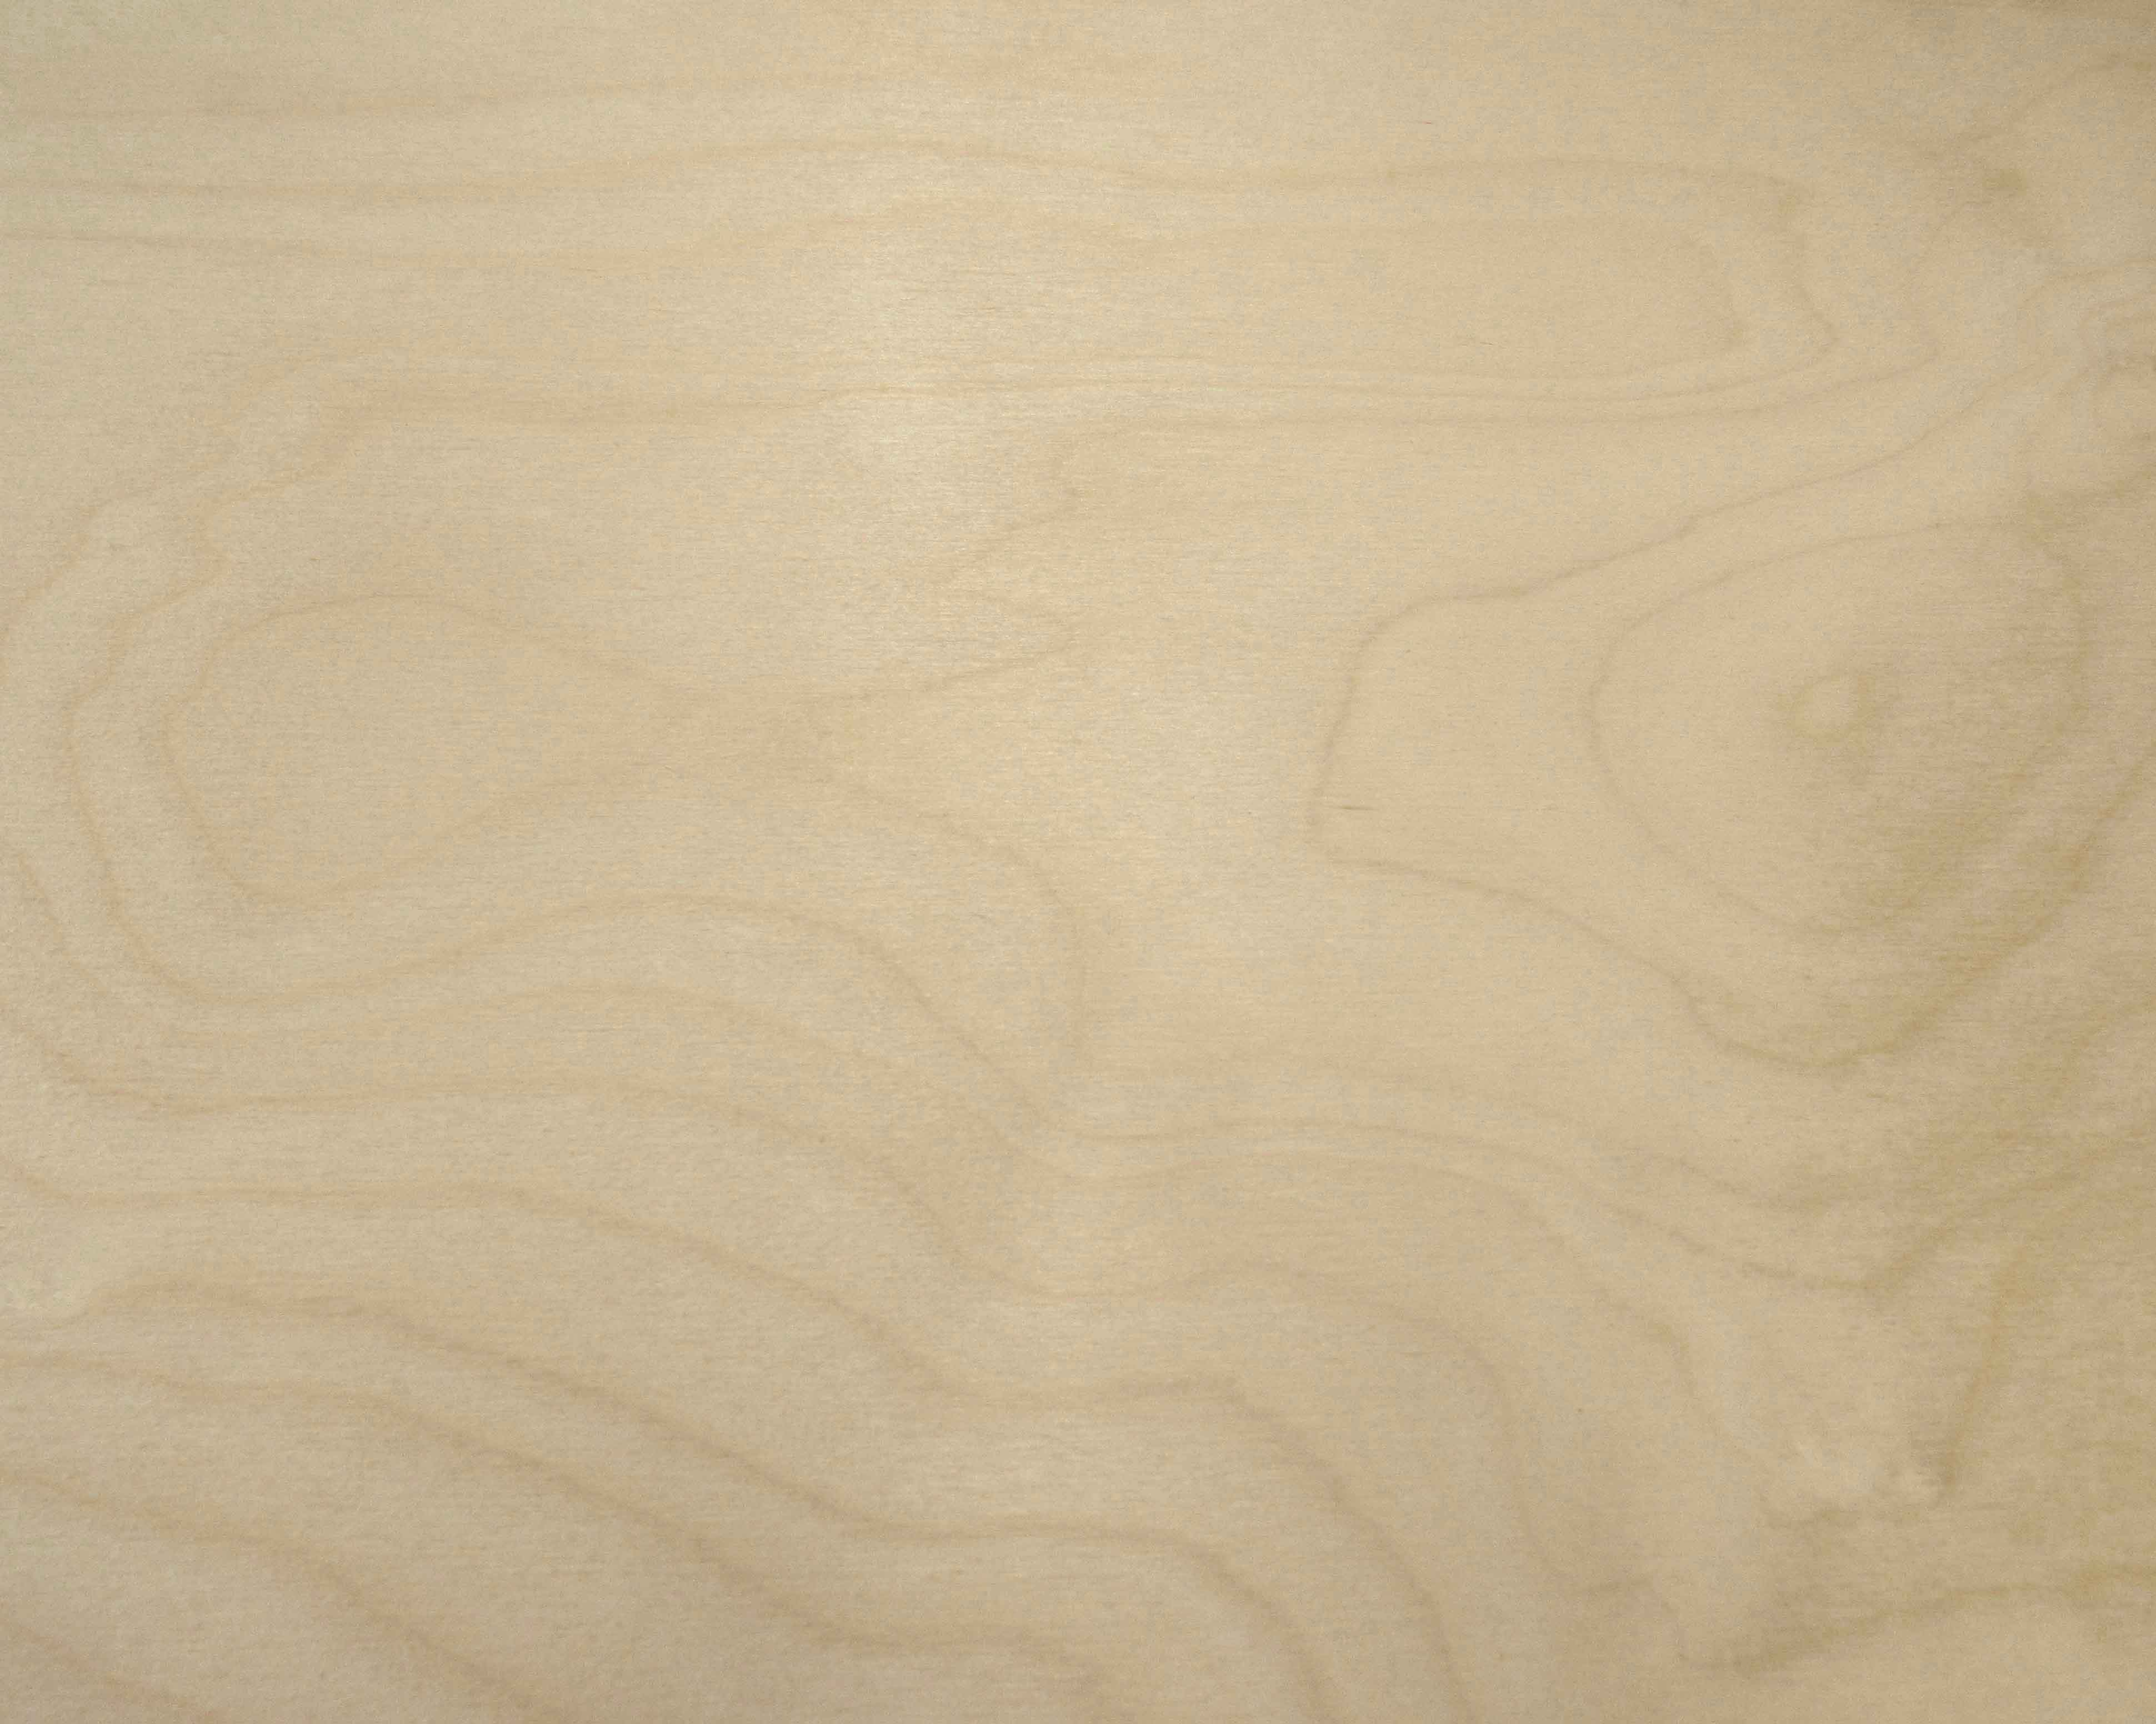 Birch Baltic Plywood Capitol City Lumber